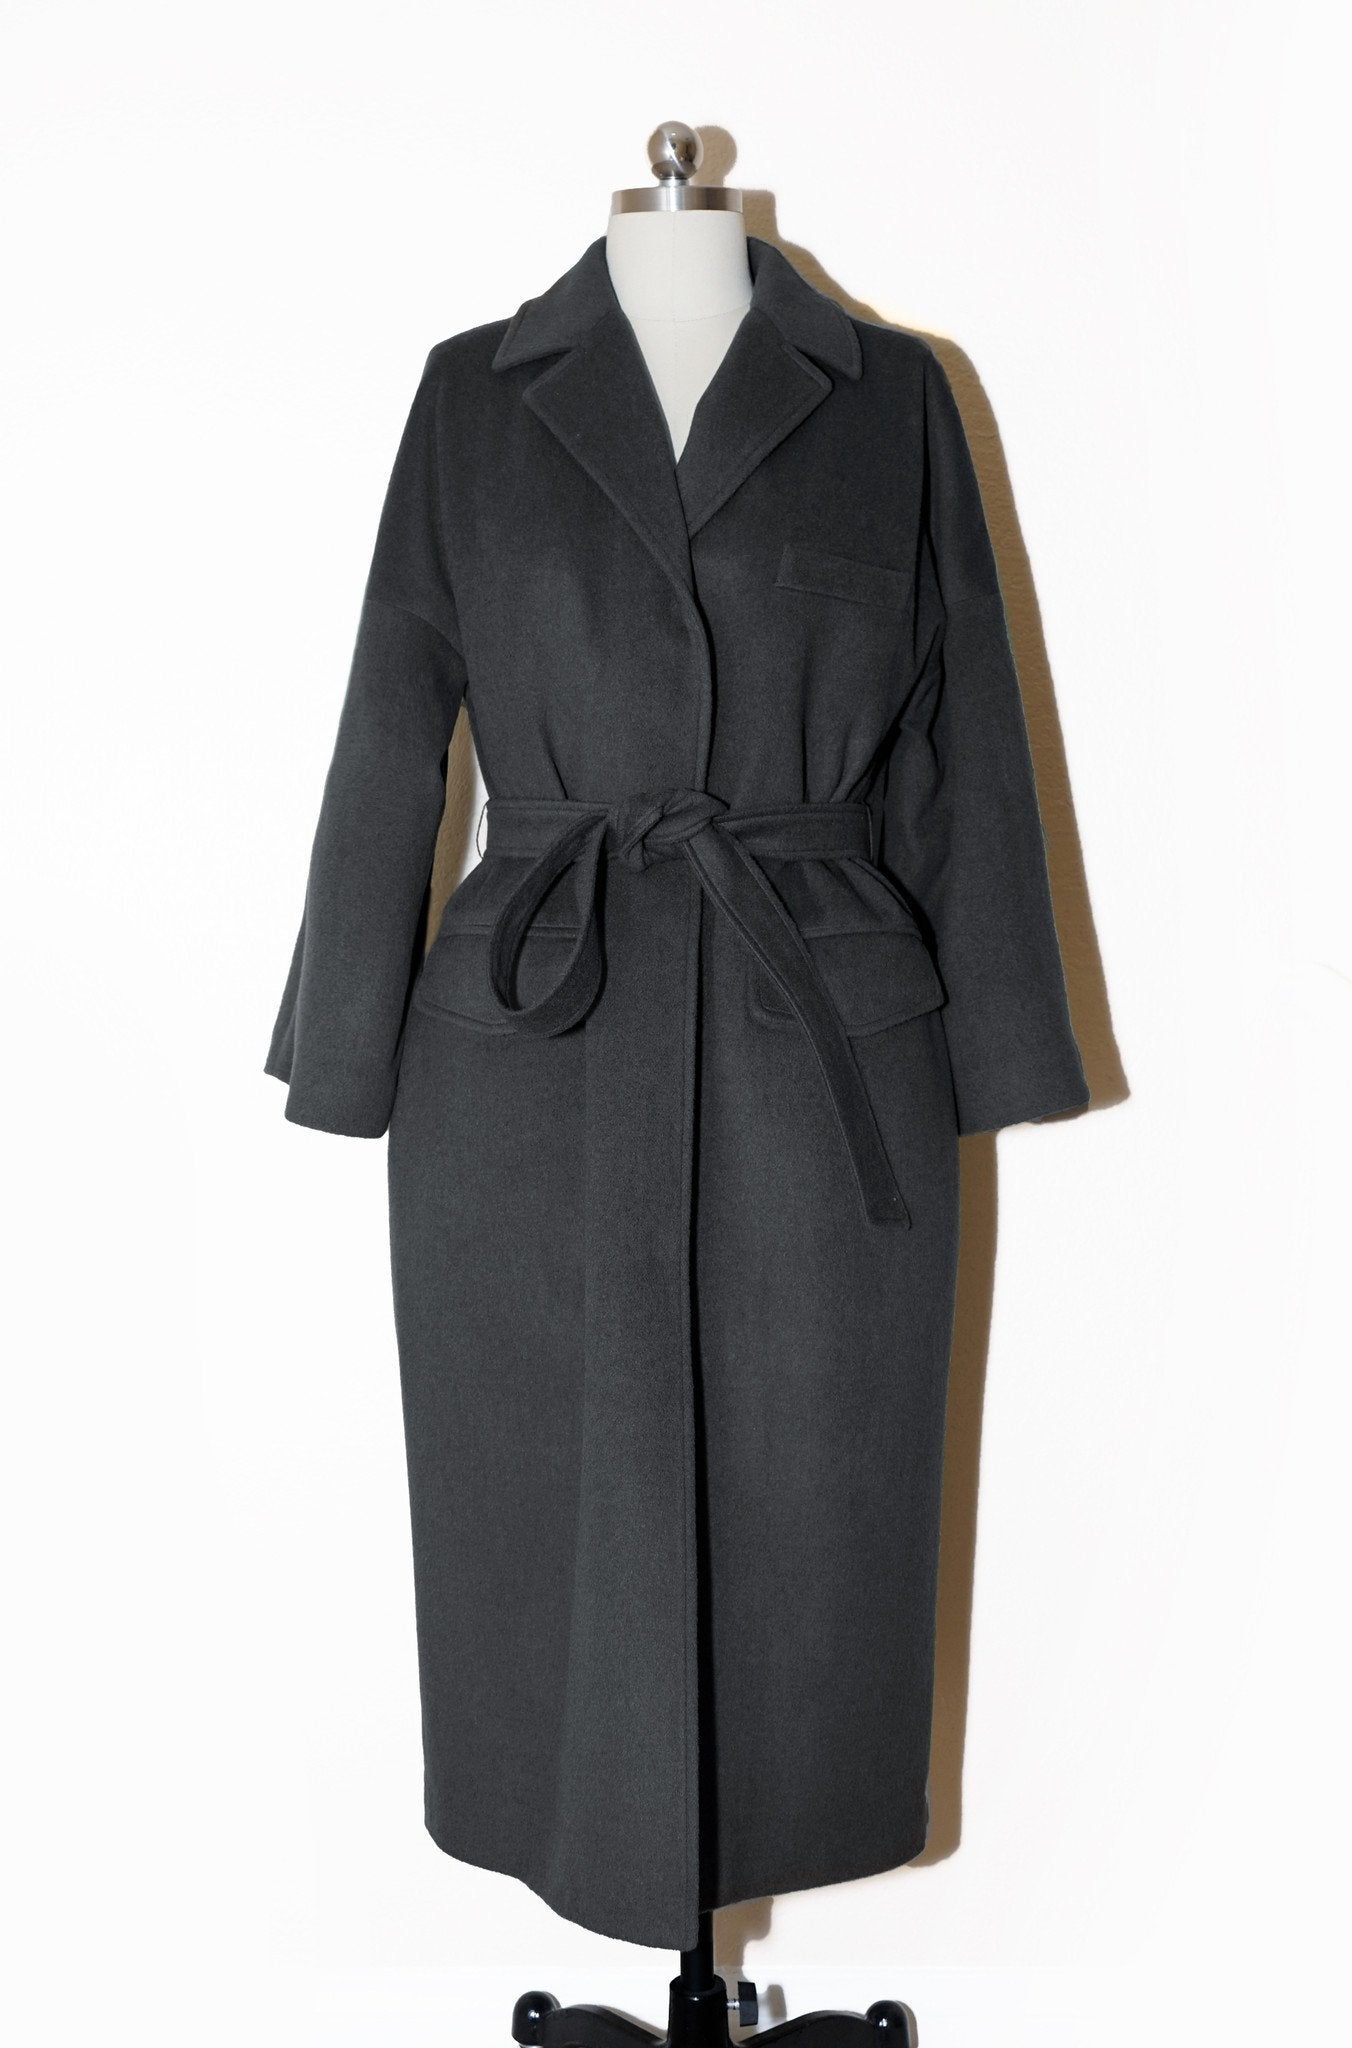 Boxy Black Coat